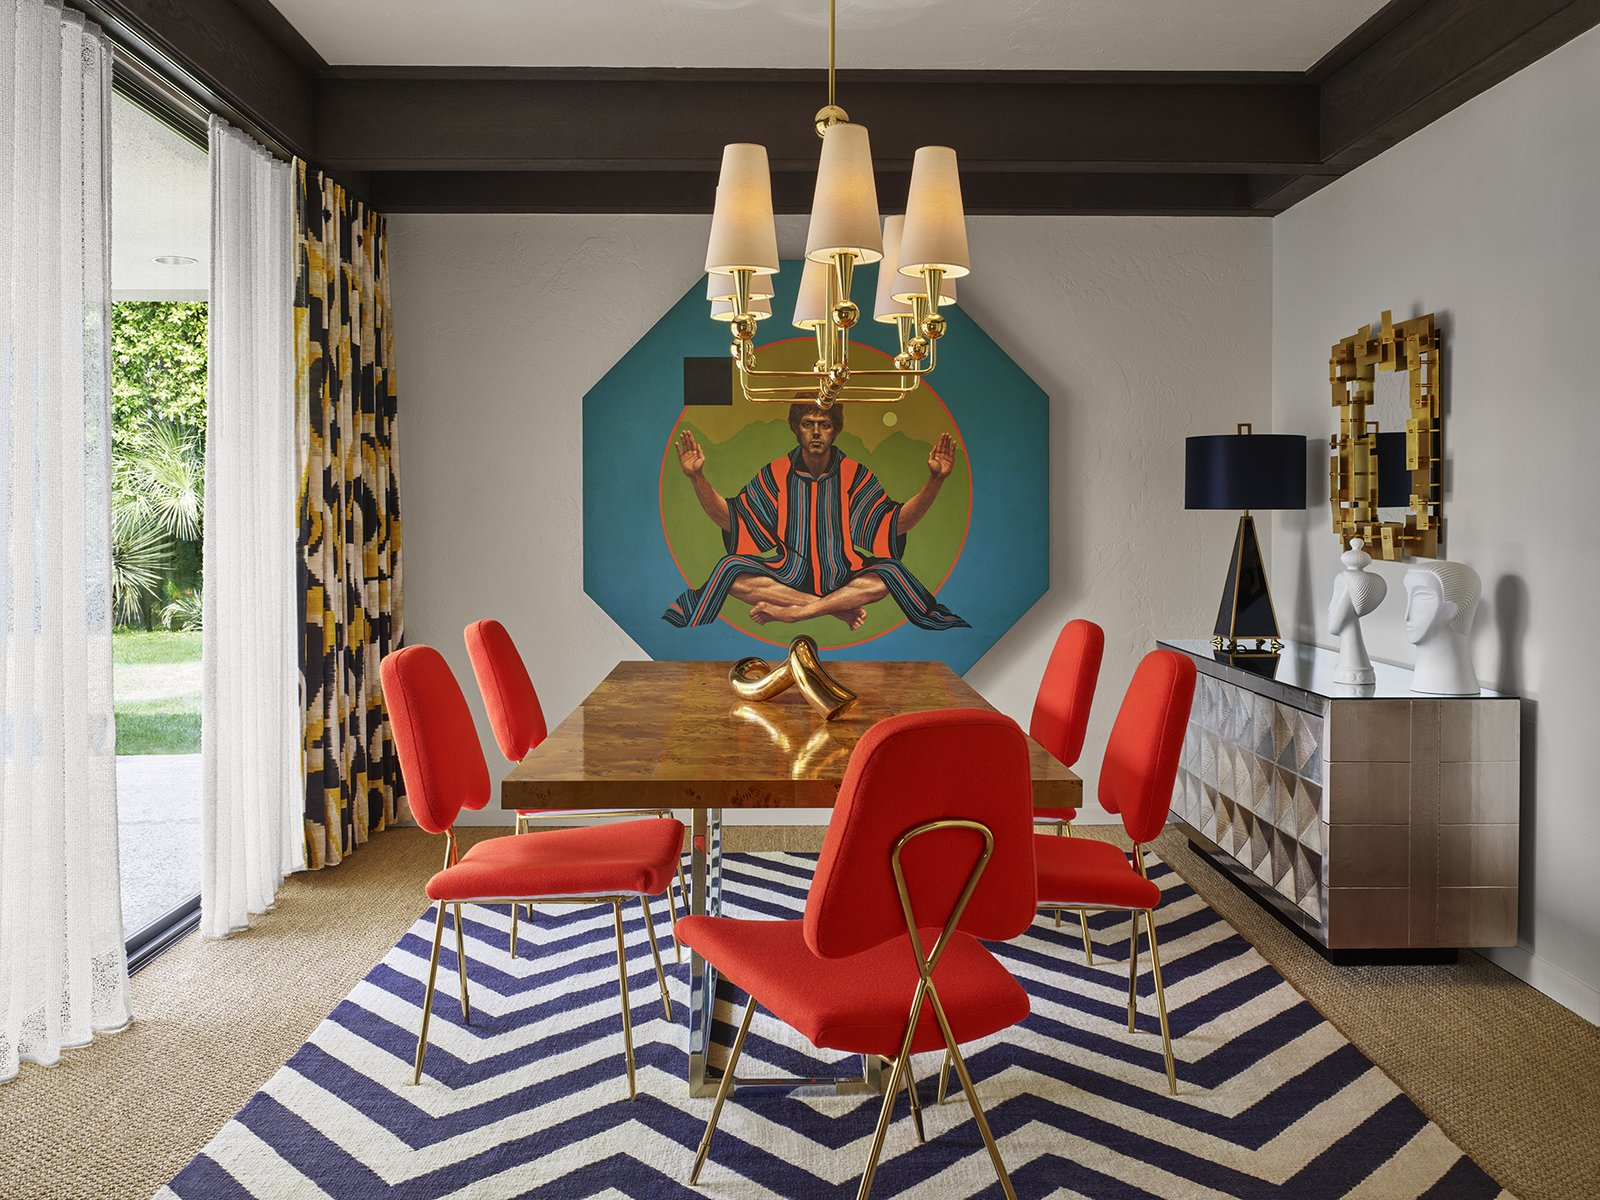 "Dining Room, Storage, Chair, Table, Rug Floor, Pendant Lighting, and Table Lighting ""The vibe is cheeky hedonistic luxury,"" designer Jonathan Adler said to describe the Parker Palm Springs.  Photo 6 of 7 in Jonathan Adler Reveals His Redesign of the Parker Palm Springs"